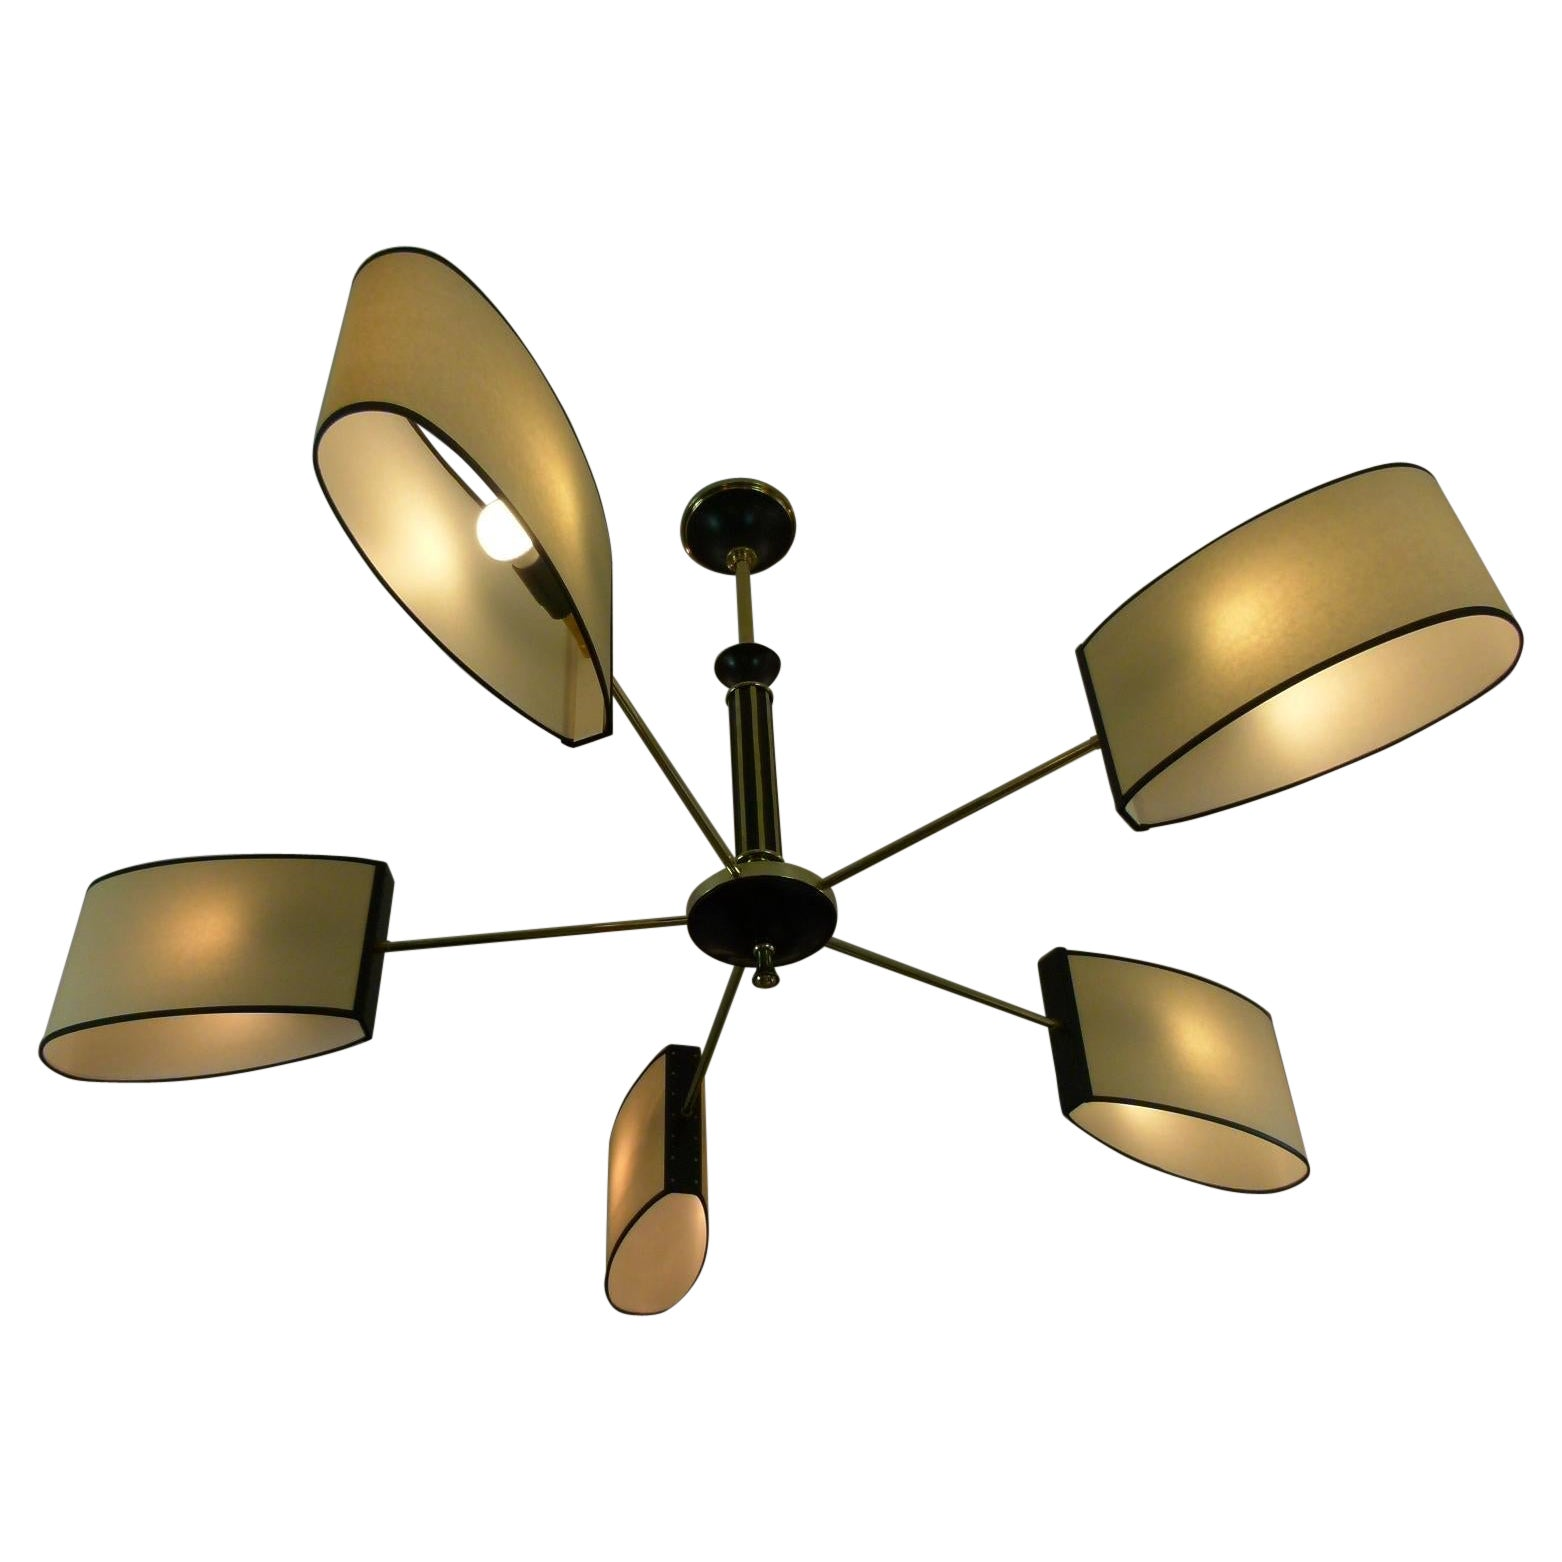 1950s Five-Lighted Arms Chandelier by Maison Lunel